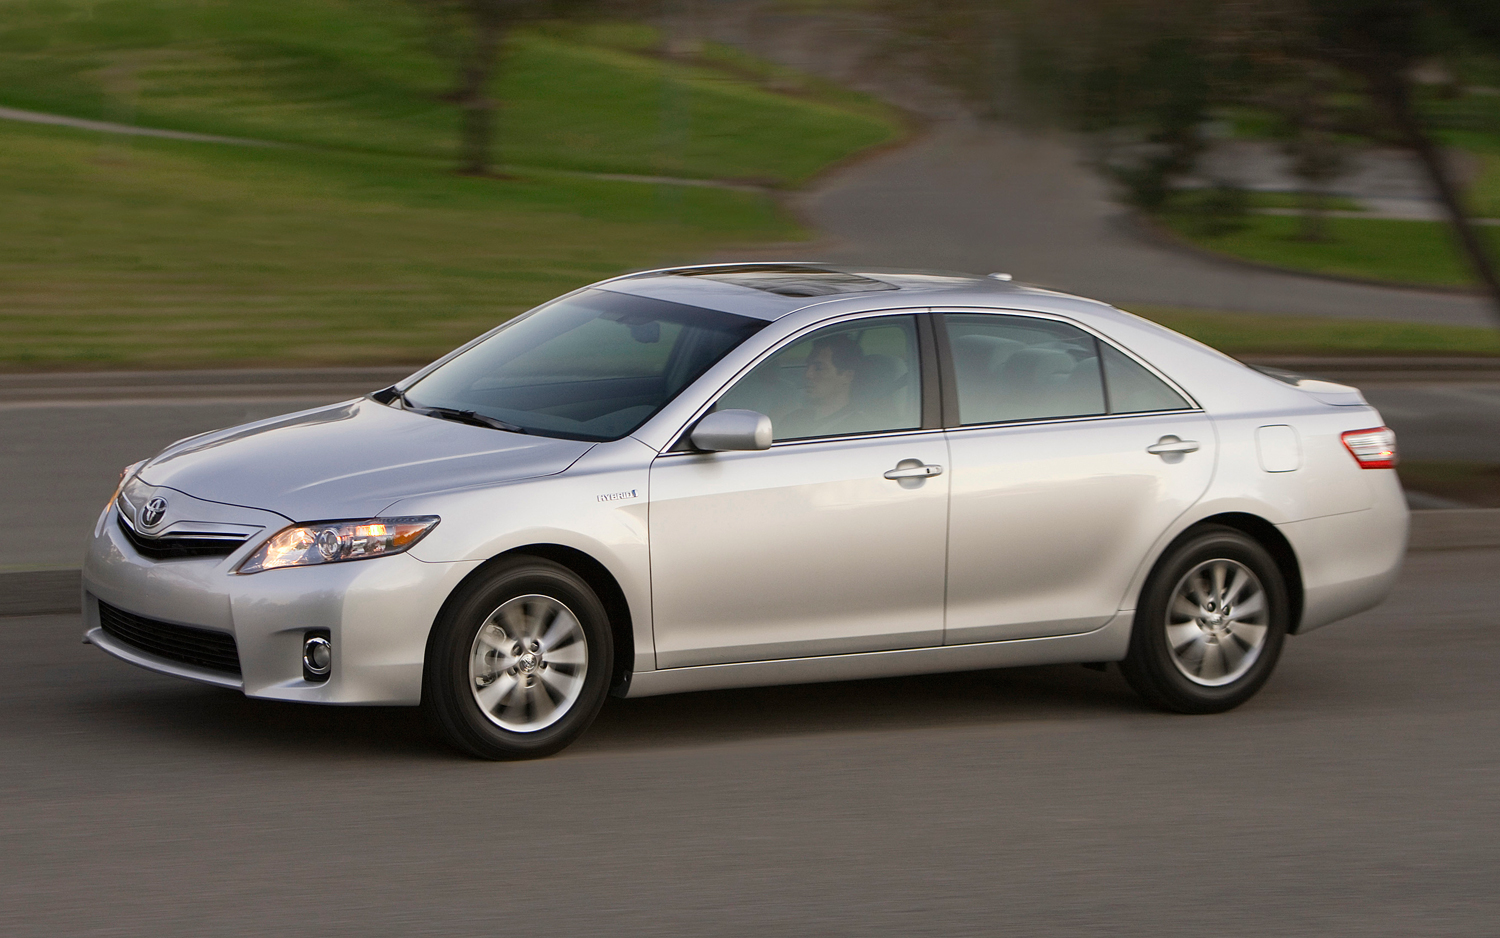 Diagram Of A 2007 Toyota Camry Gle Engine Schematics Consumer Reports Wants To Recall Hybrid Motor Trend 2002 Celica